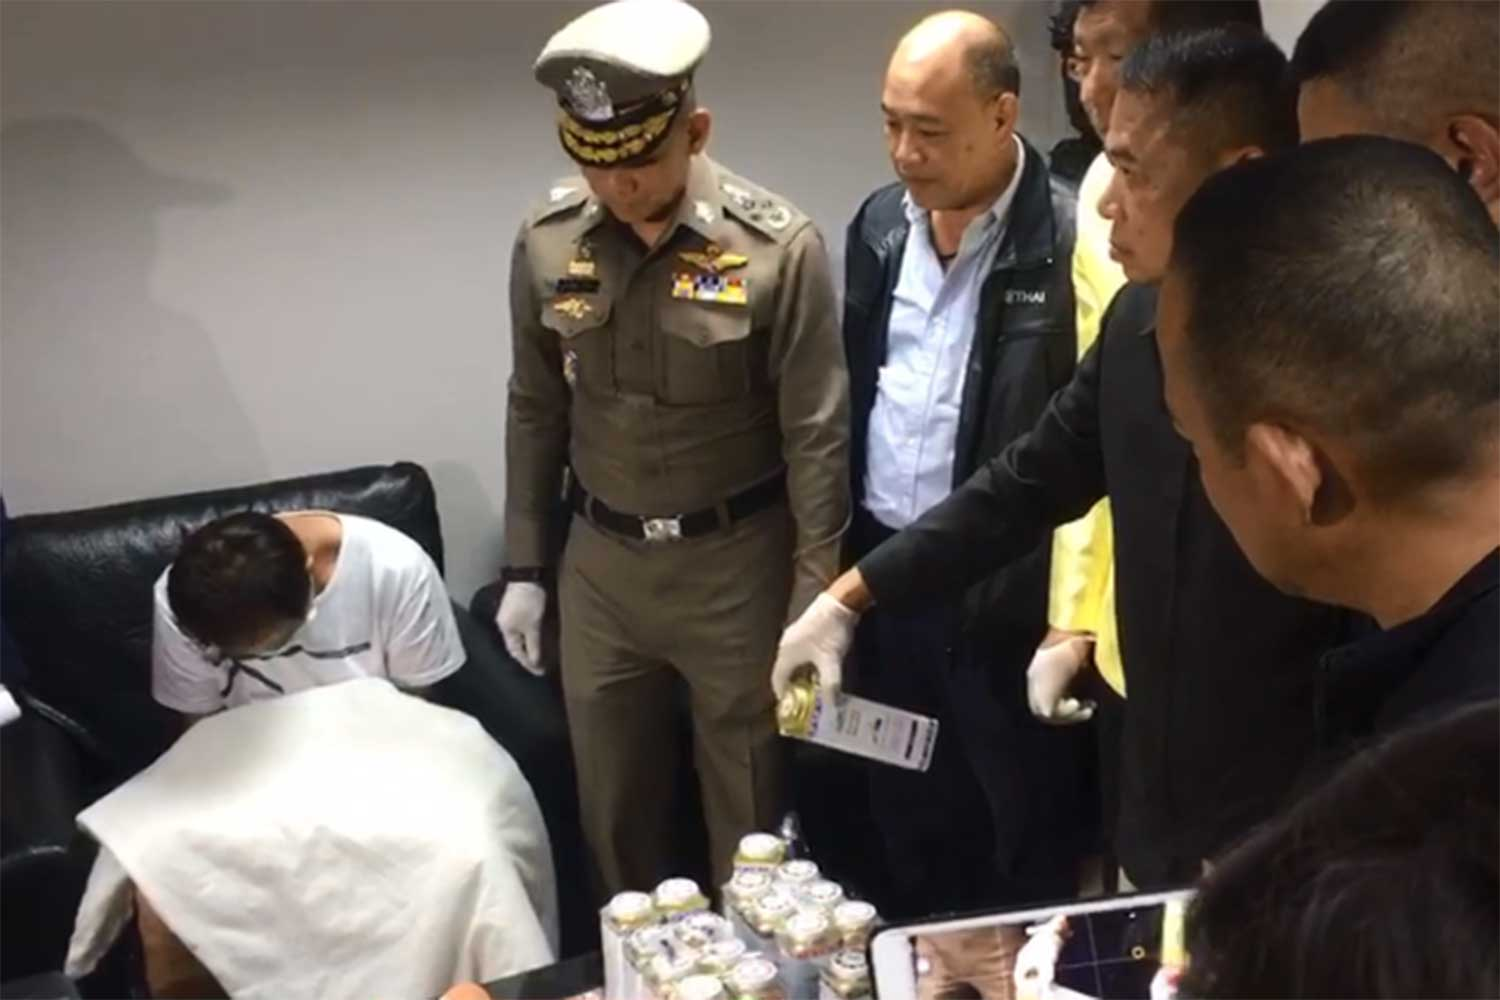 Officers seize heroin hidden in 18 tins of cooling powder from Chen Kuan Lin, 38, a Taiwanese man, left, as he was about to board a flight to his home country on April 26 this year. The Criminal Court on Wednesday sentenced him to life imprisonment. (Capture from a clip posted by @kaojorleuk.media Facebook page)